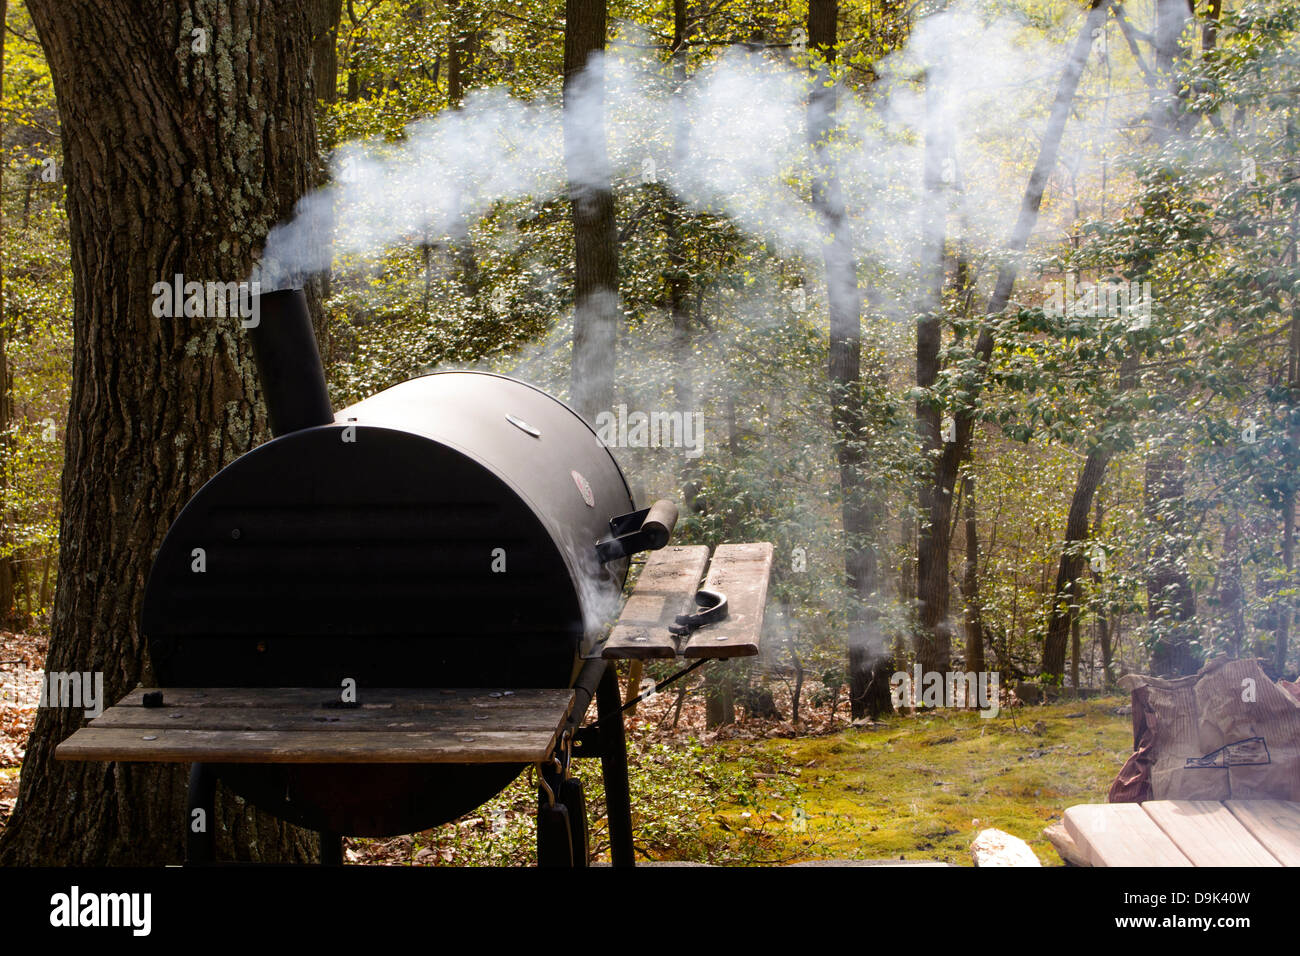 Charcoal barbecue grill/ smoker with smoke - Stock Image